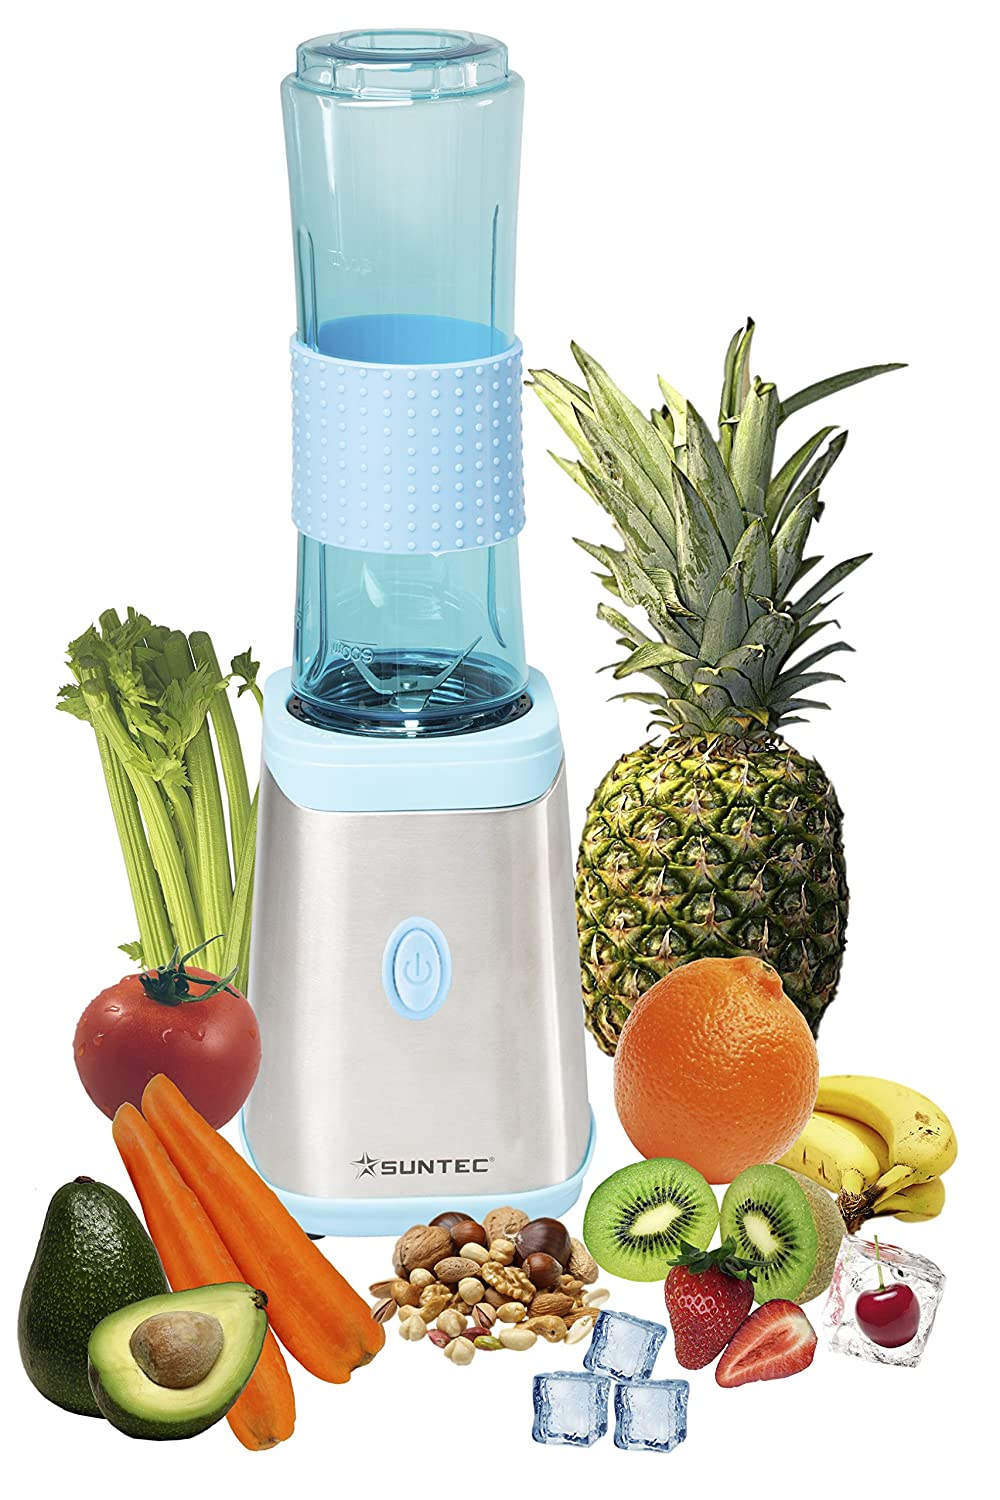 Suntec Wellness SMO-9936 Smoothie Maker, 350 W, Multicolor